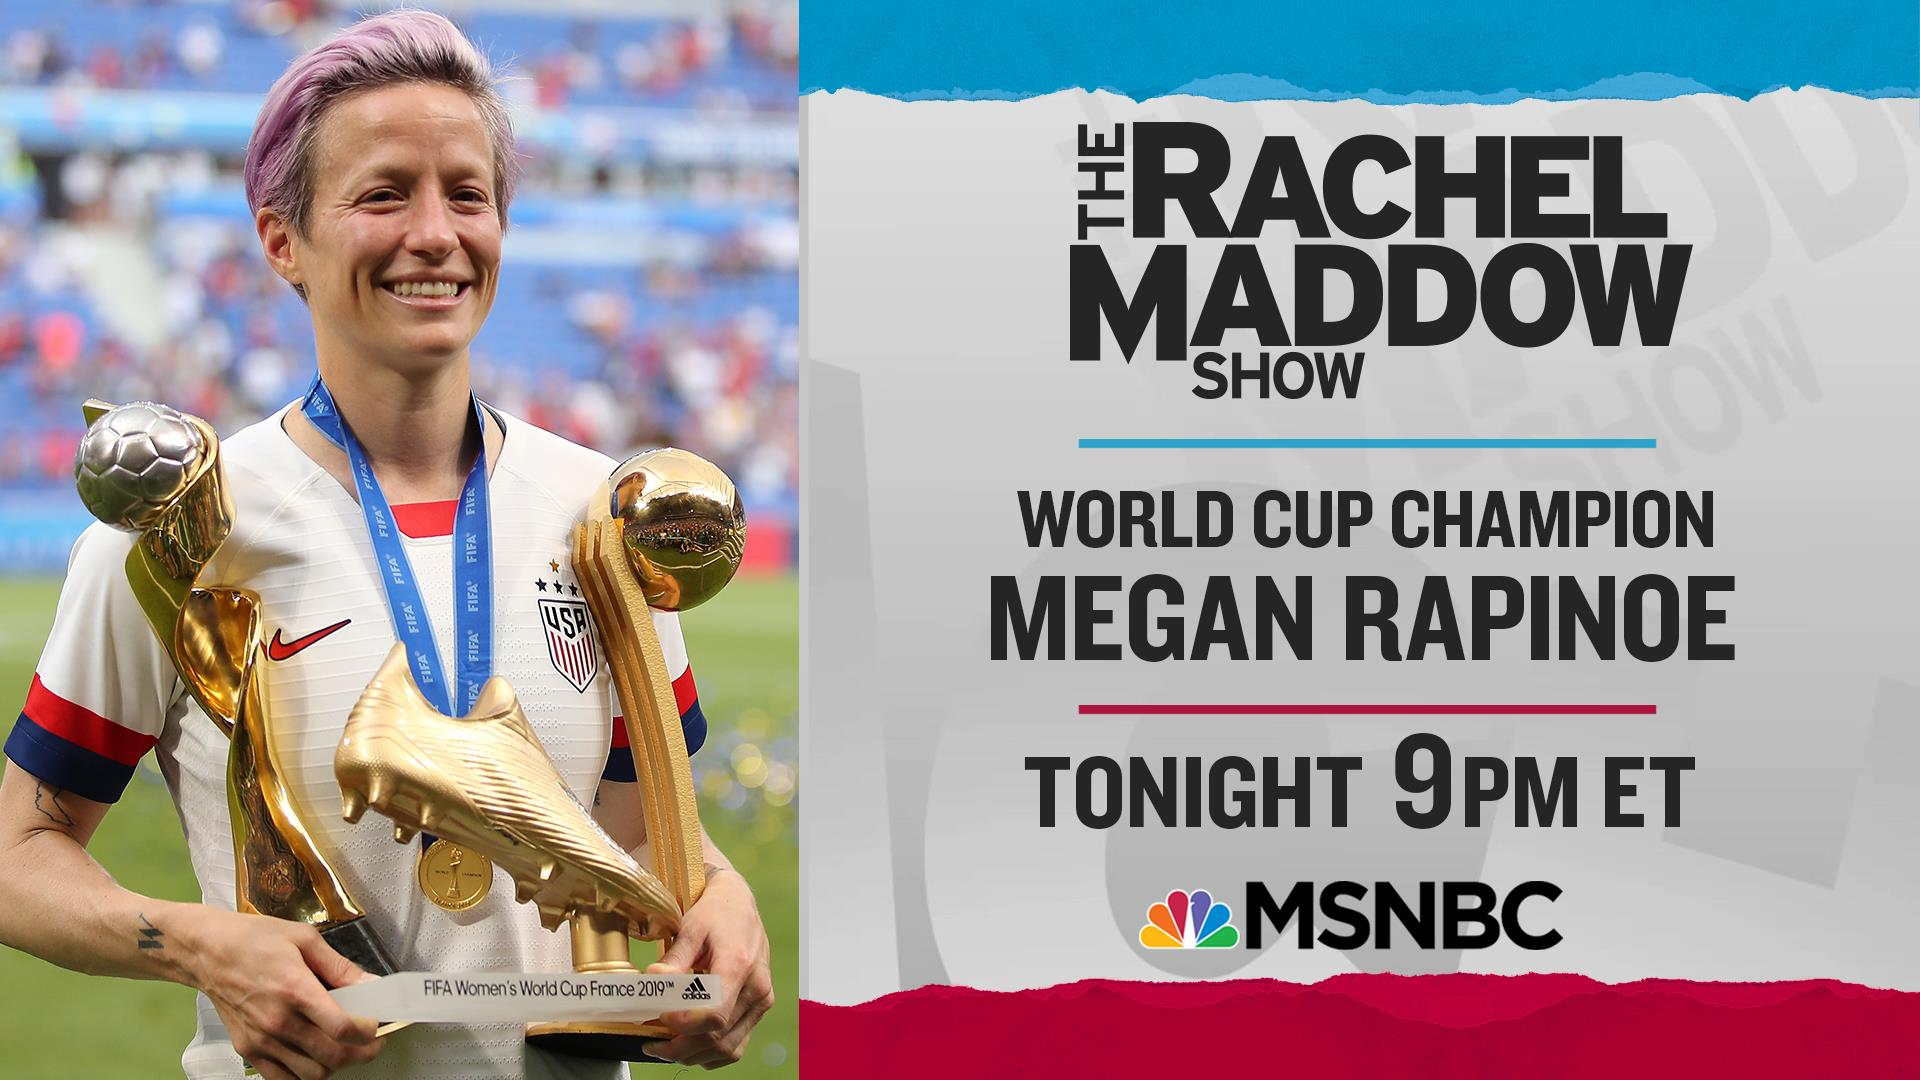 Rapinoe, Sanders, Harris make week of big Maddow show interviews